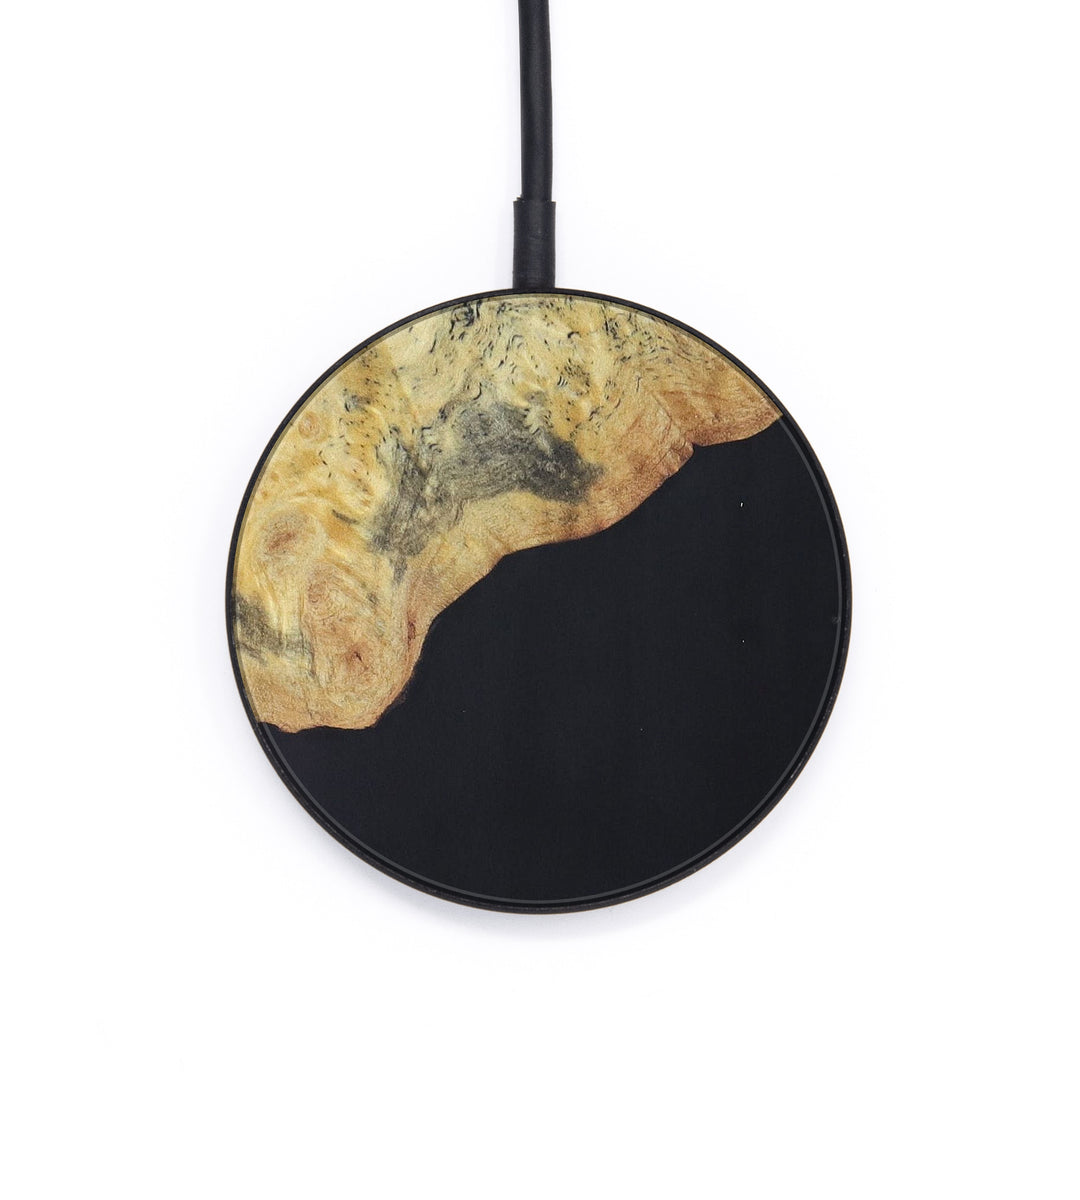 Circle Wood+Resin Wireless Charger - Inna (Pure Black, 393273)